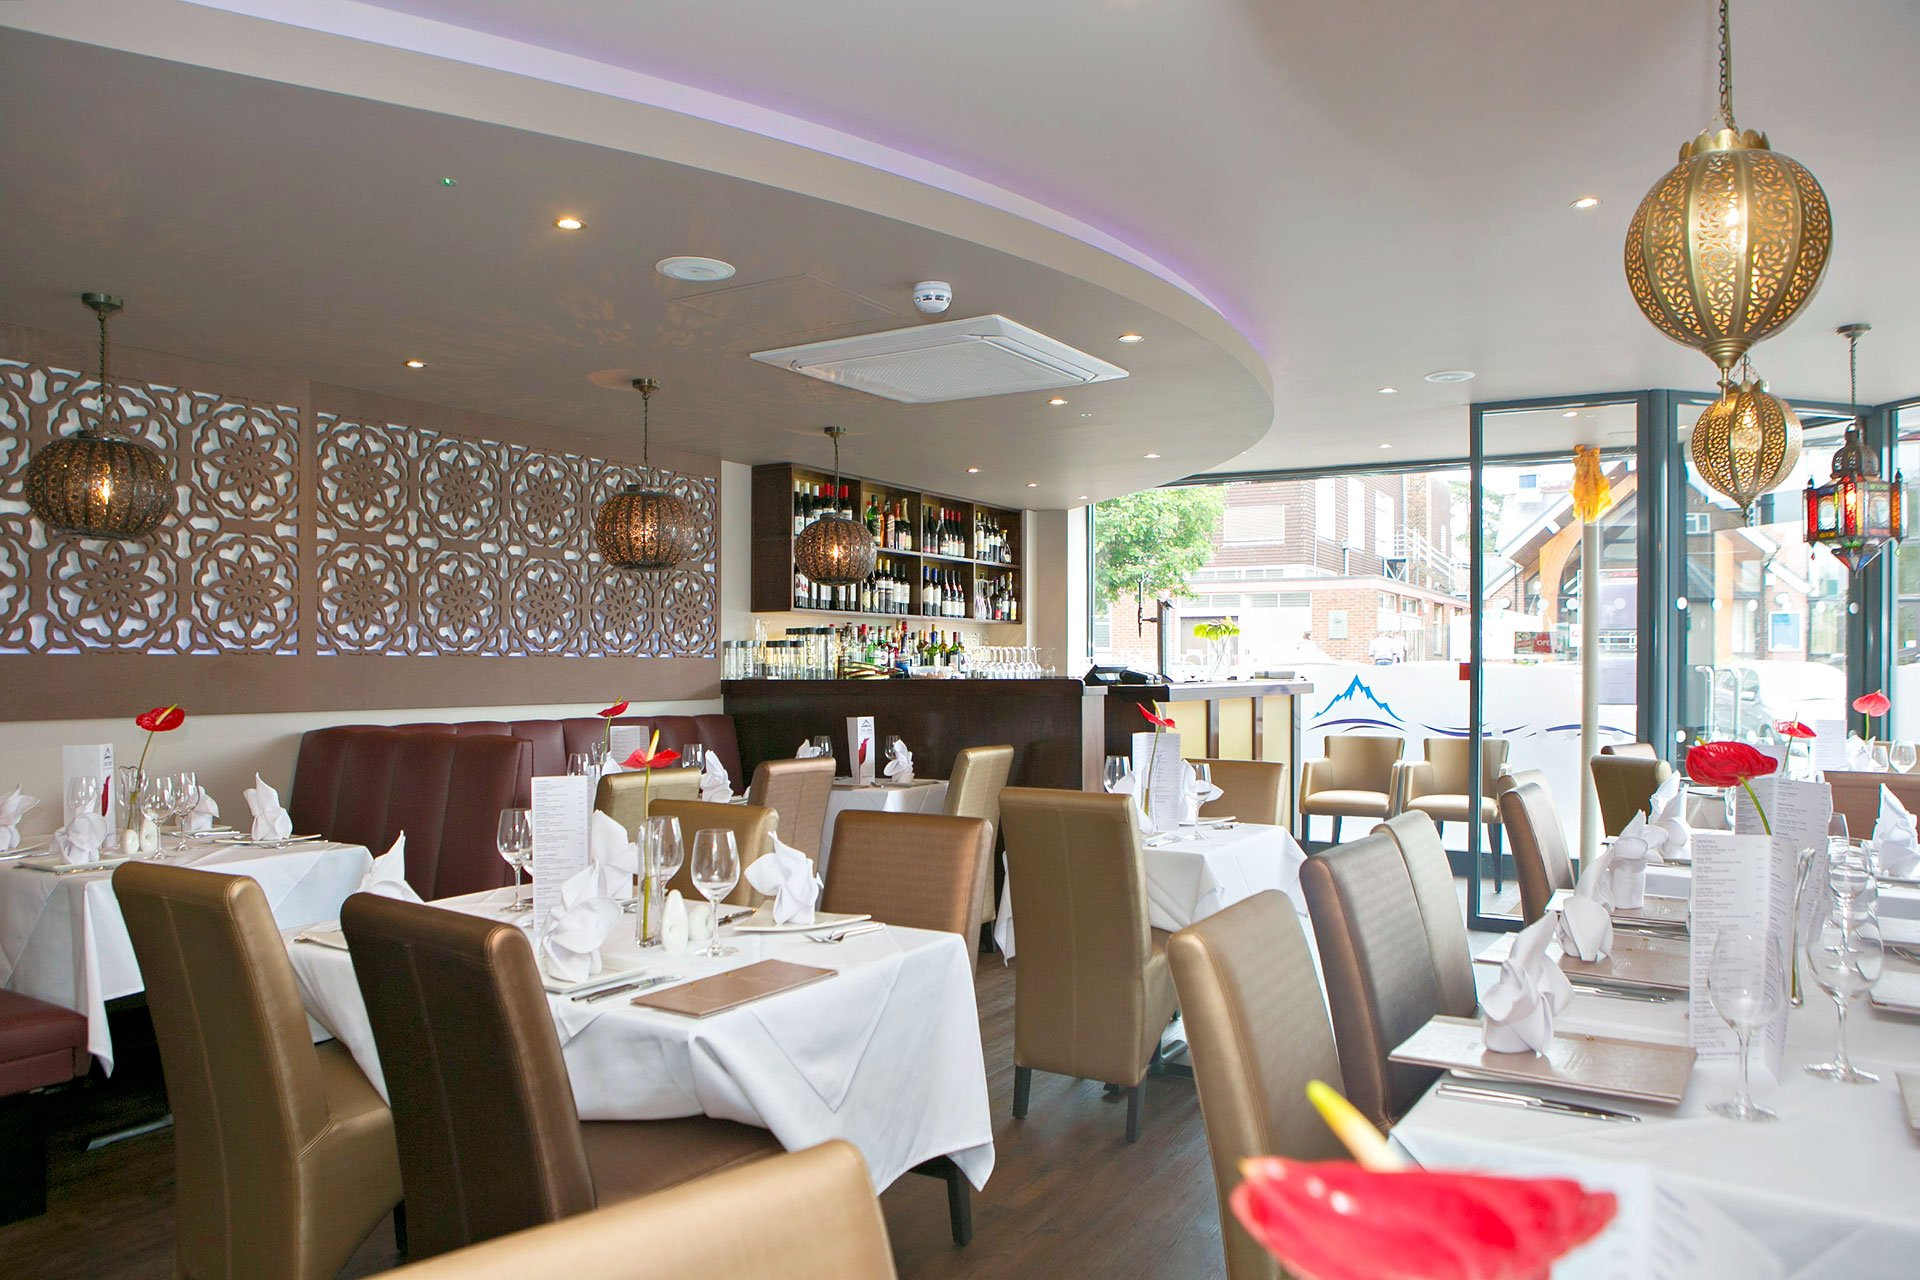 The 29029 Restaurant - Indian Restaurant in Poole Broadstone - The 29029 Restaurant Broadstone